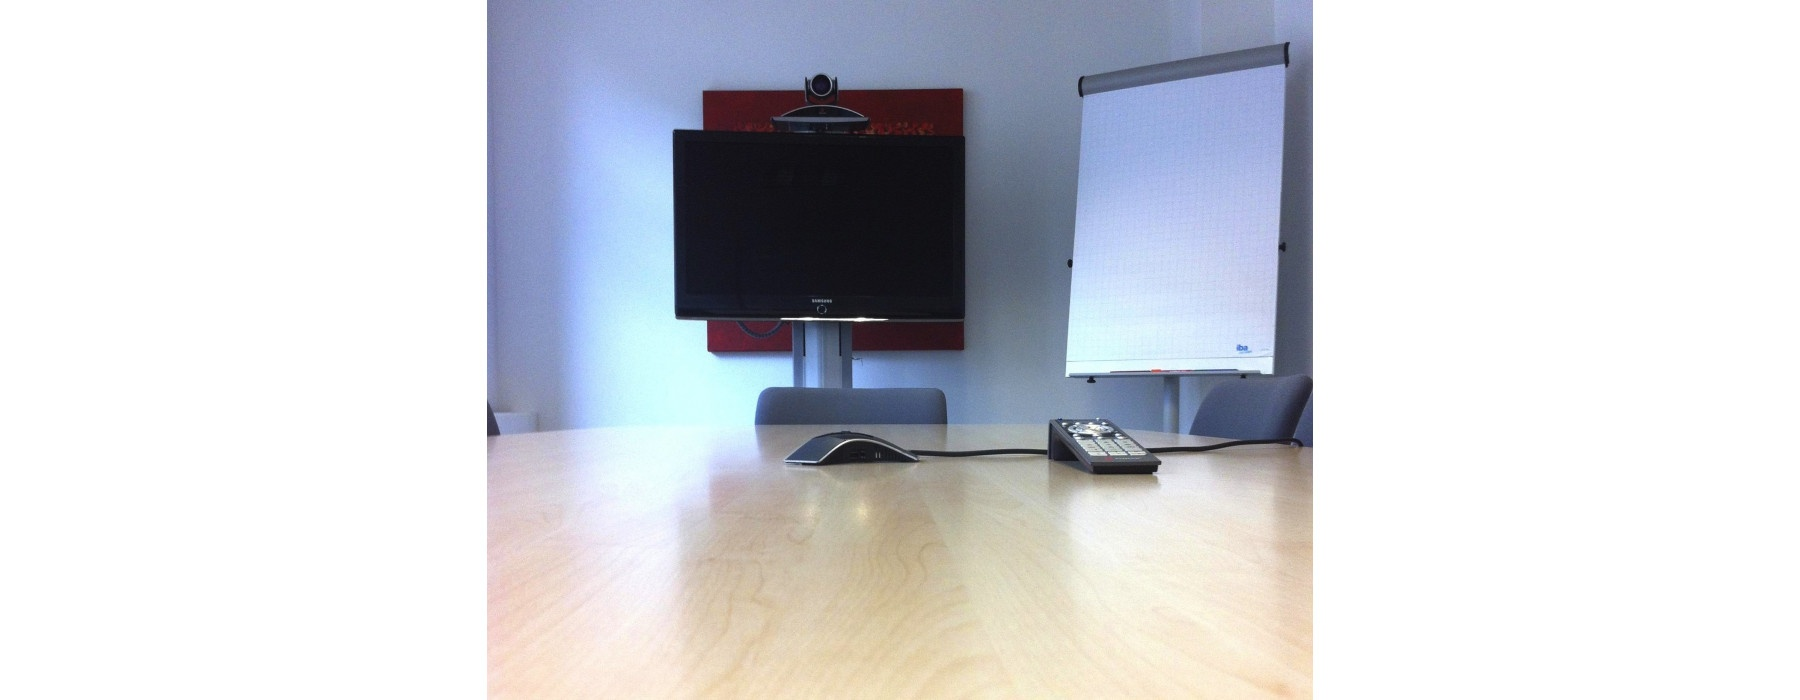 Zurich - Airgate - Video conferencing